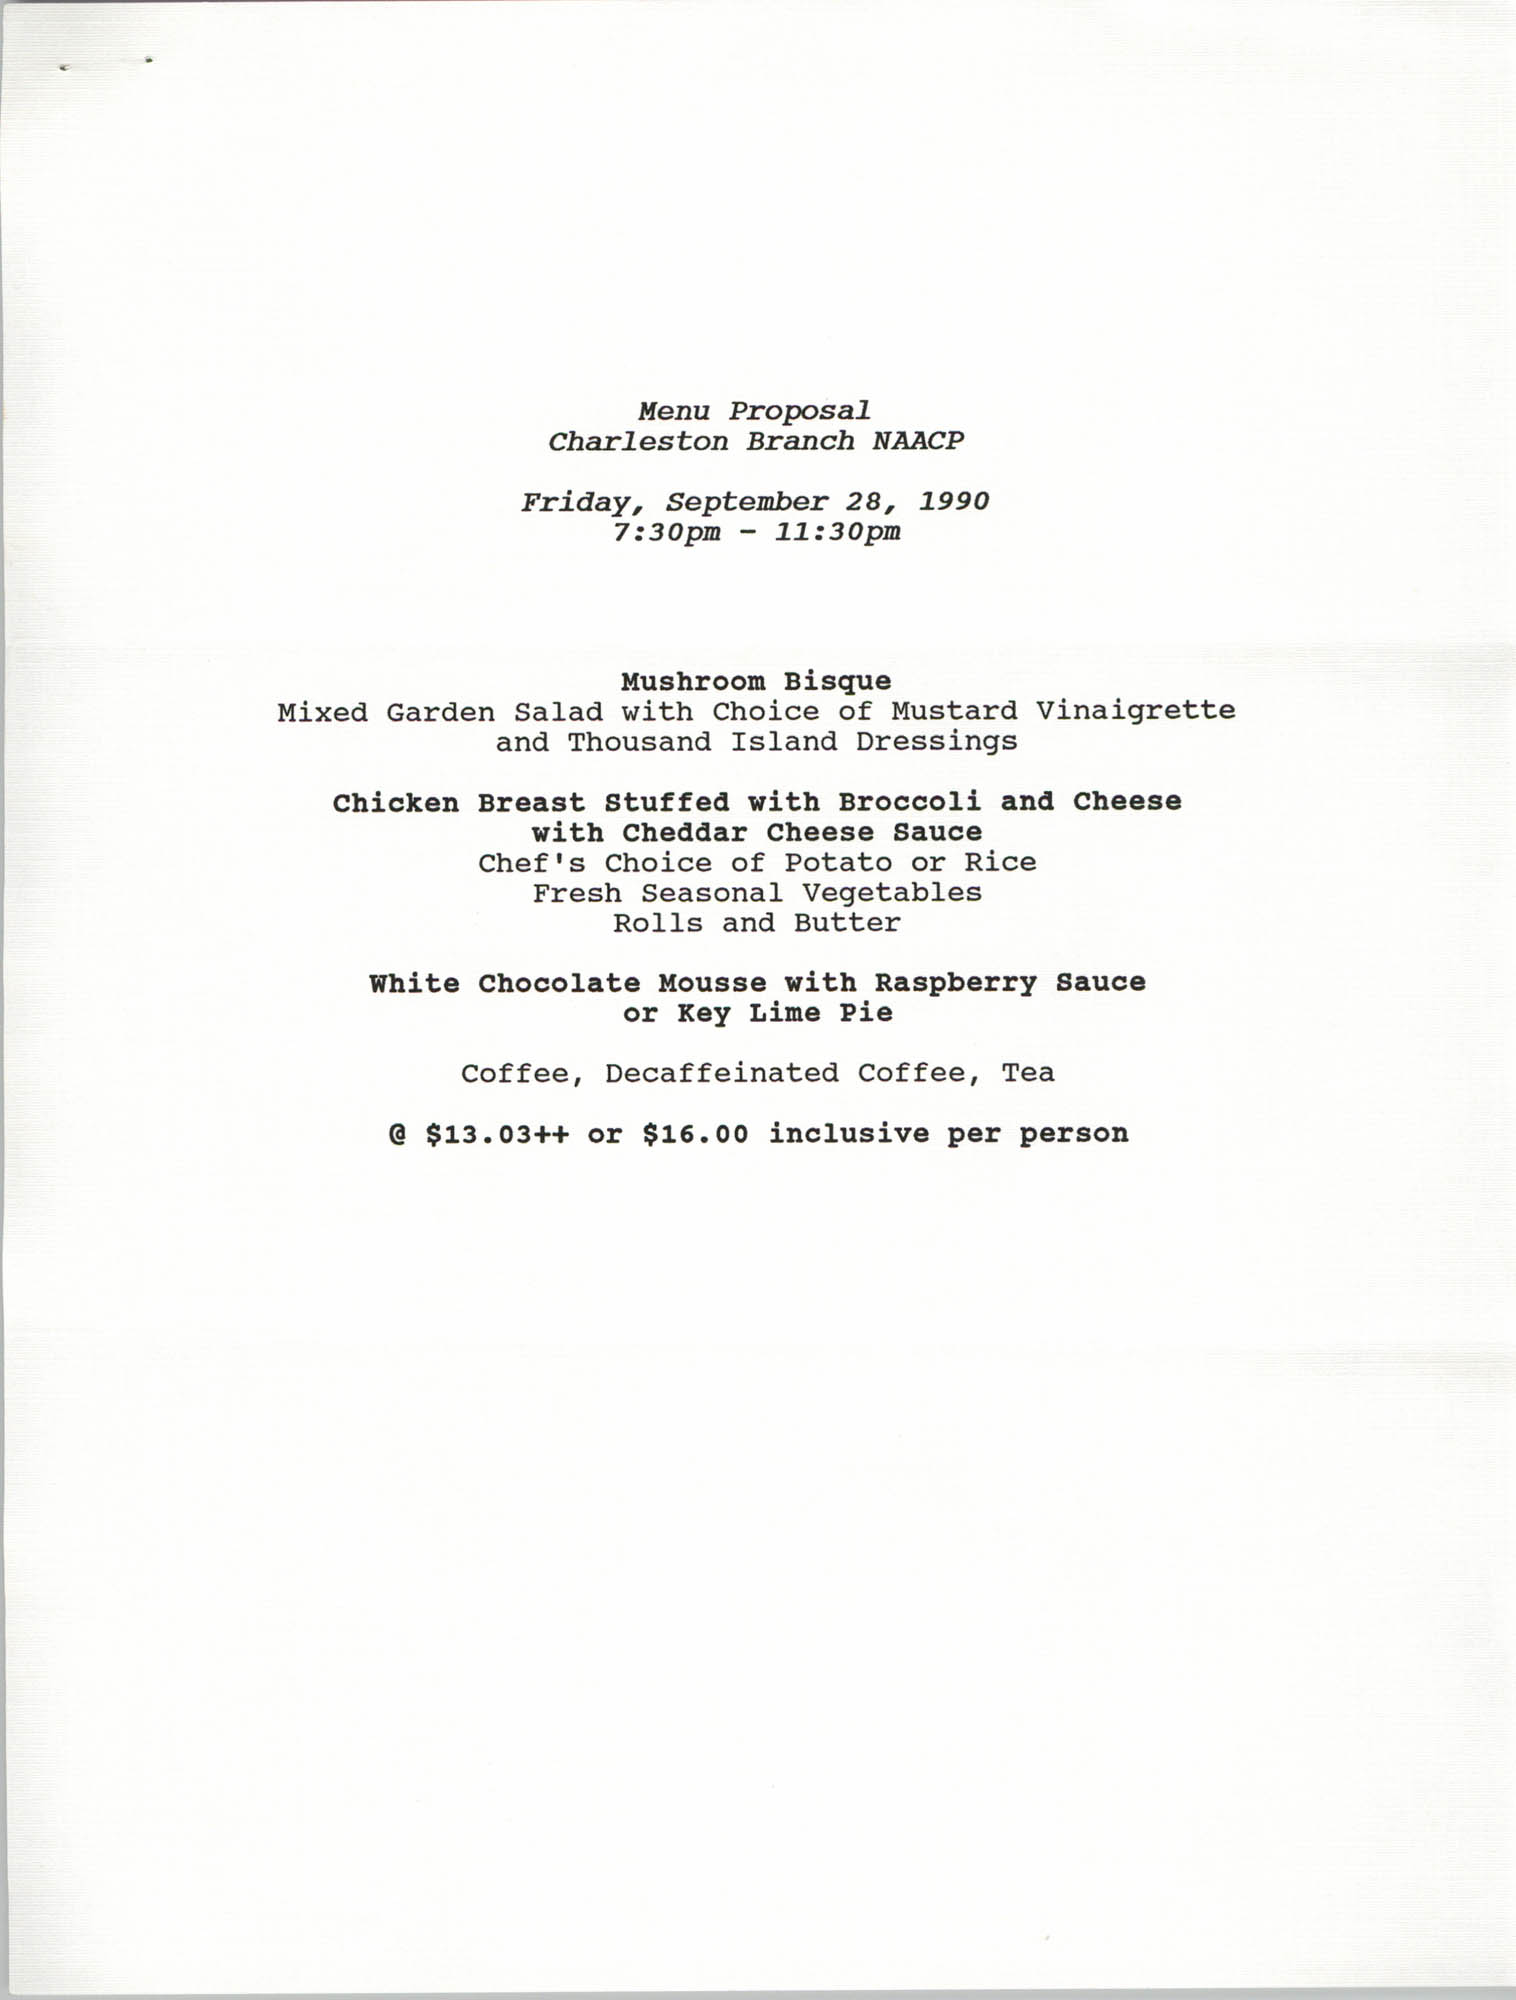 Menu Proposal, Charleston Branch of the NAACP, Freedom Fund Banquet